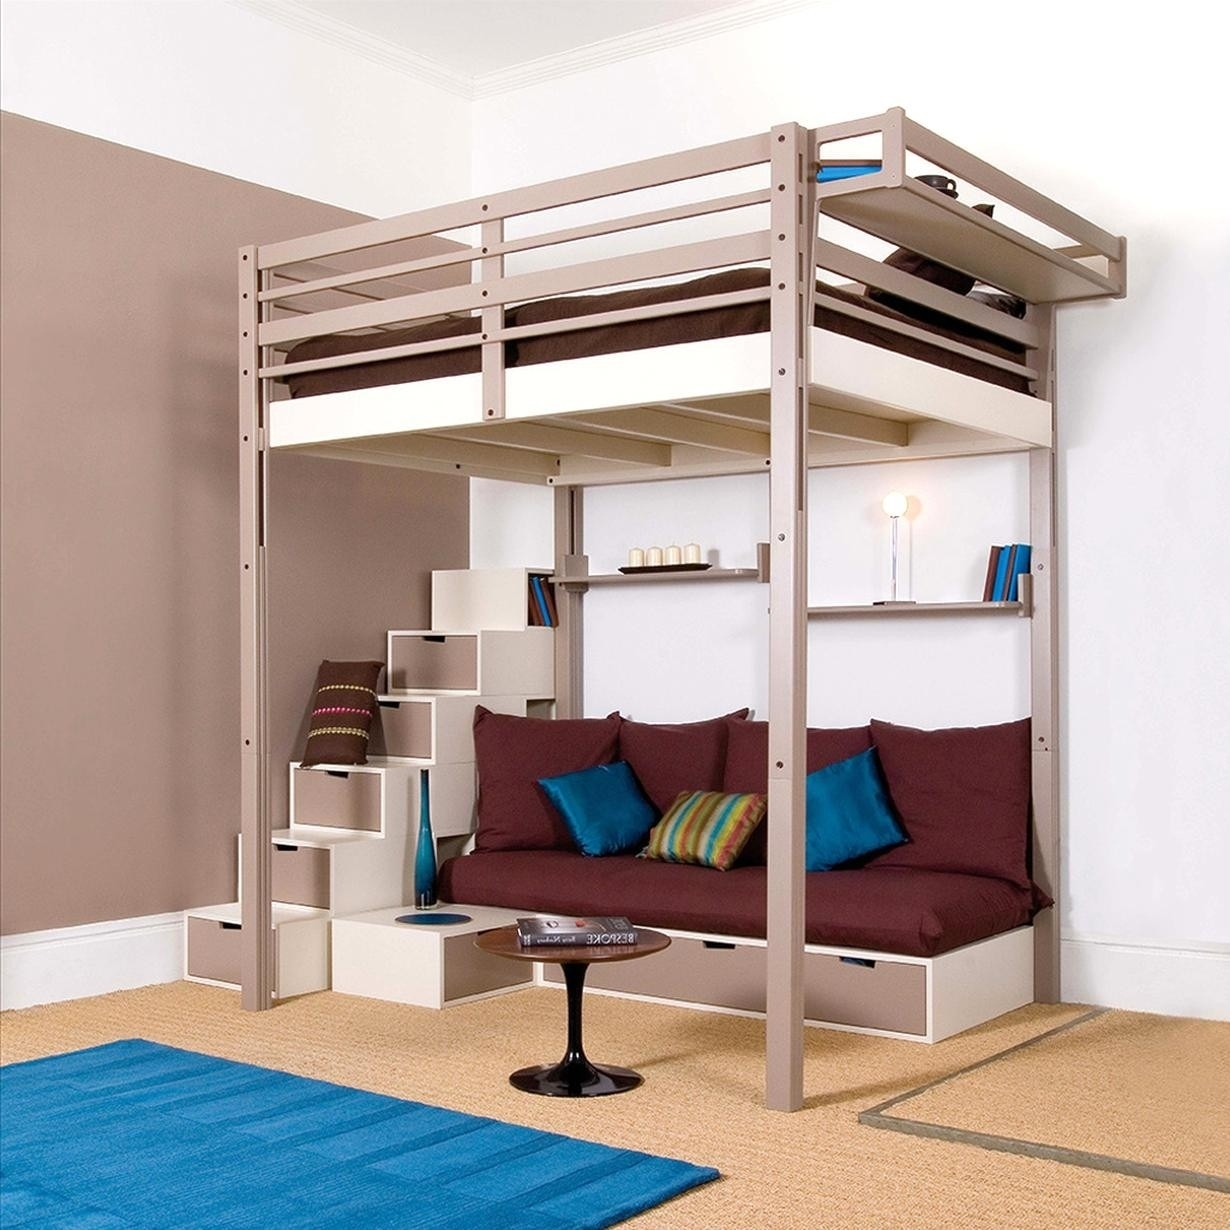 for adults plans Loft beds